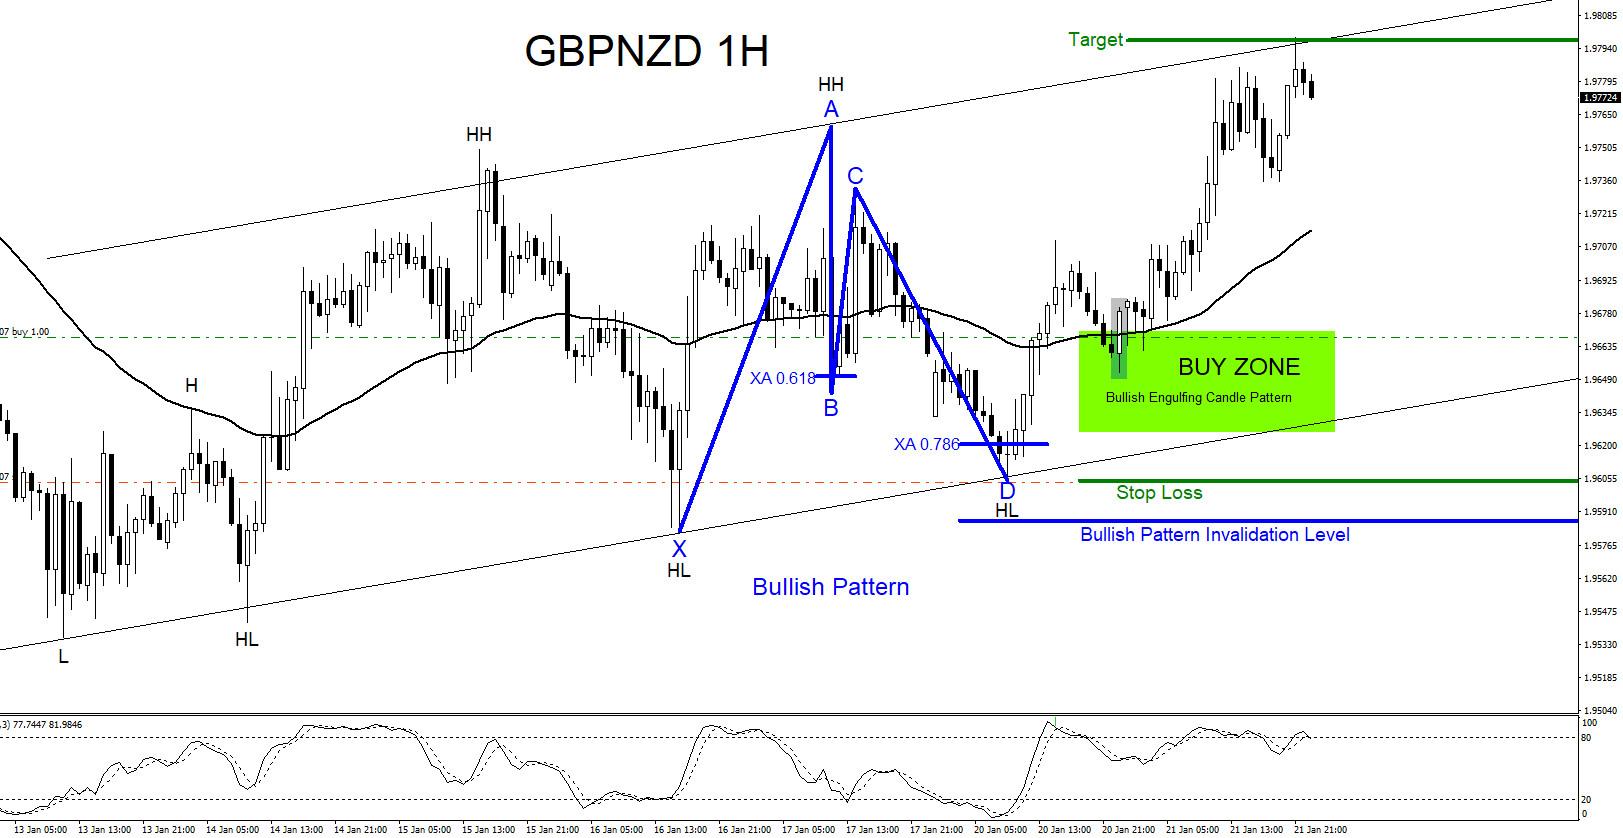 GBPNZD : Catching the Move Higher